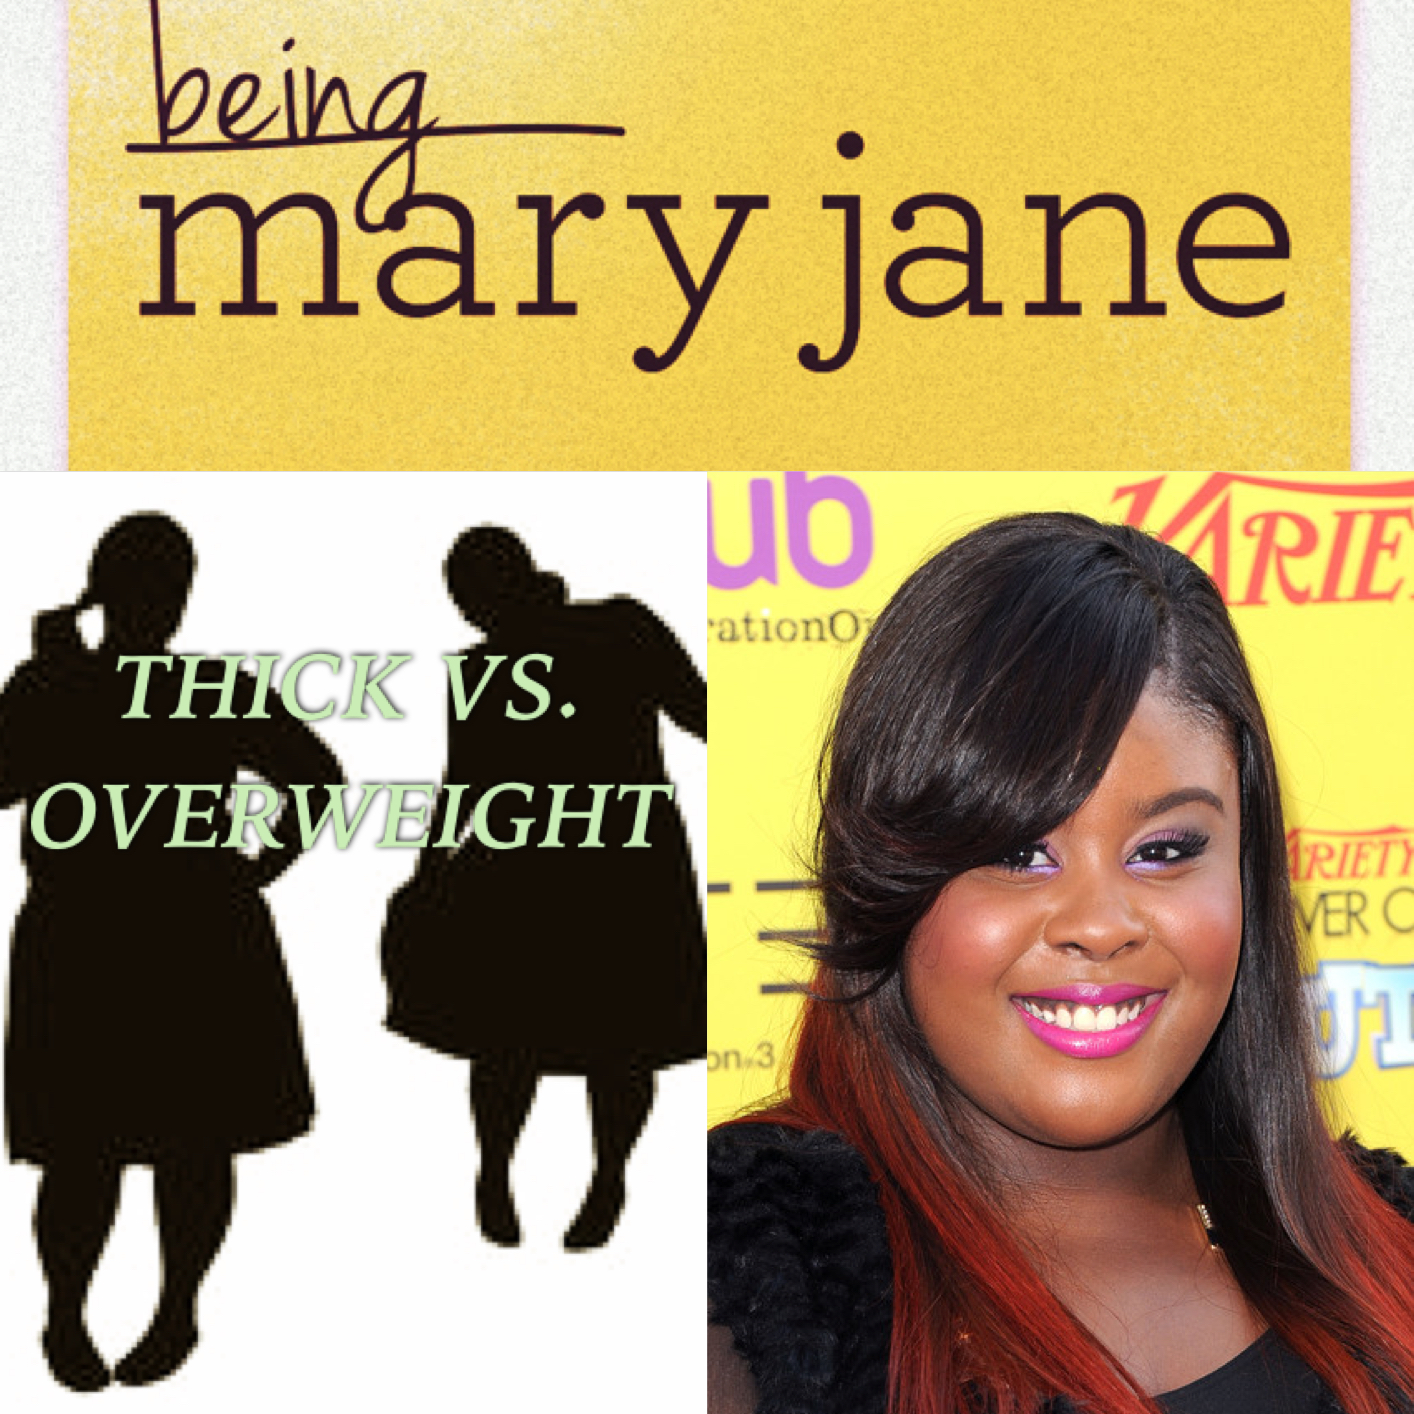 Being Mary Janes Views On Thick I AGREE Vs